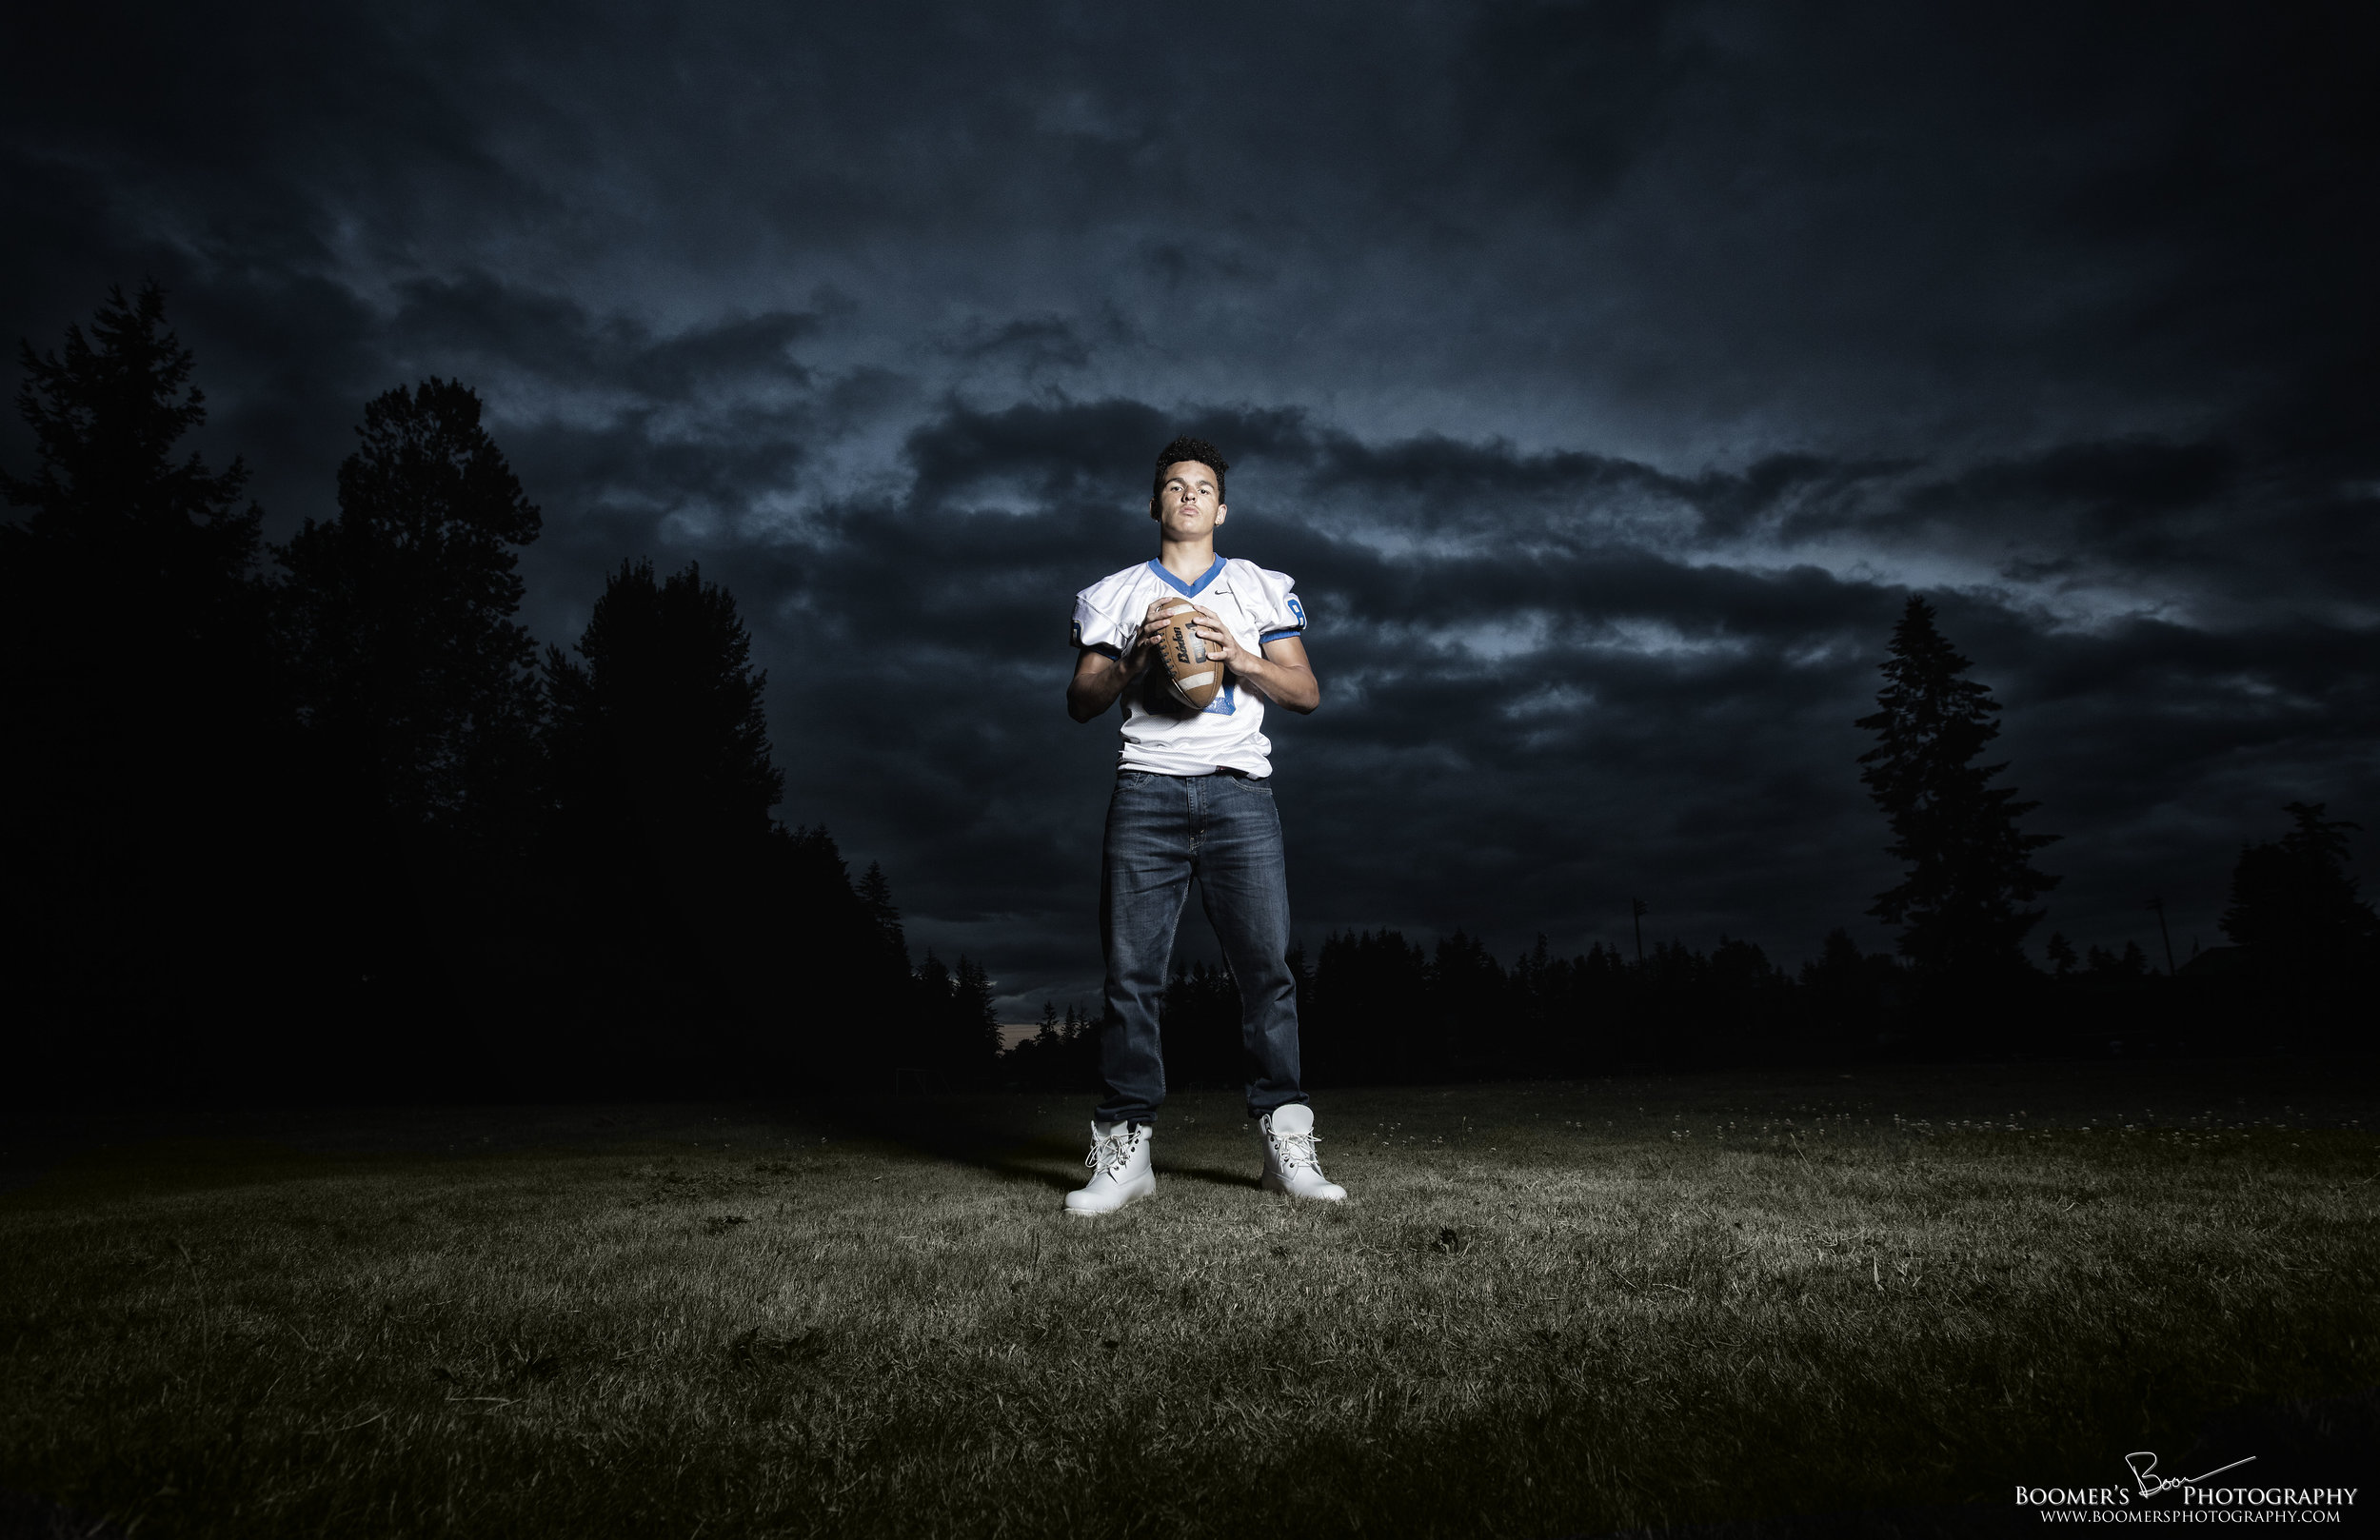 www.boomersphotography.com